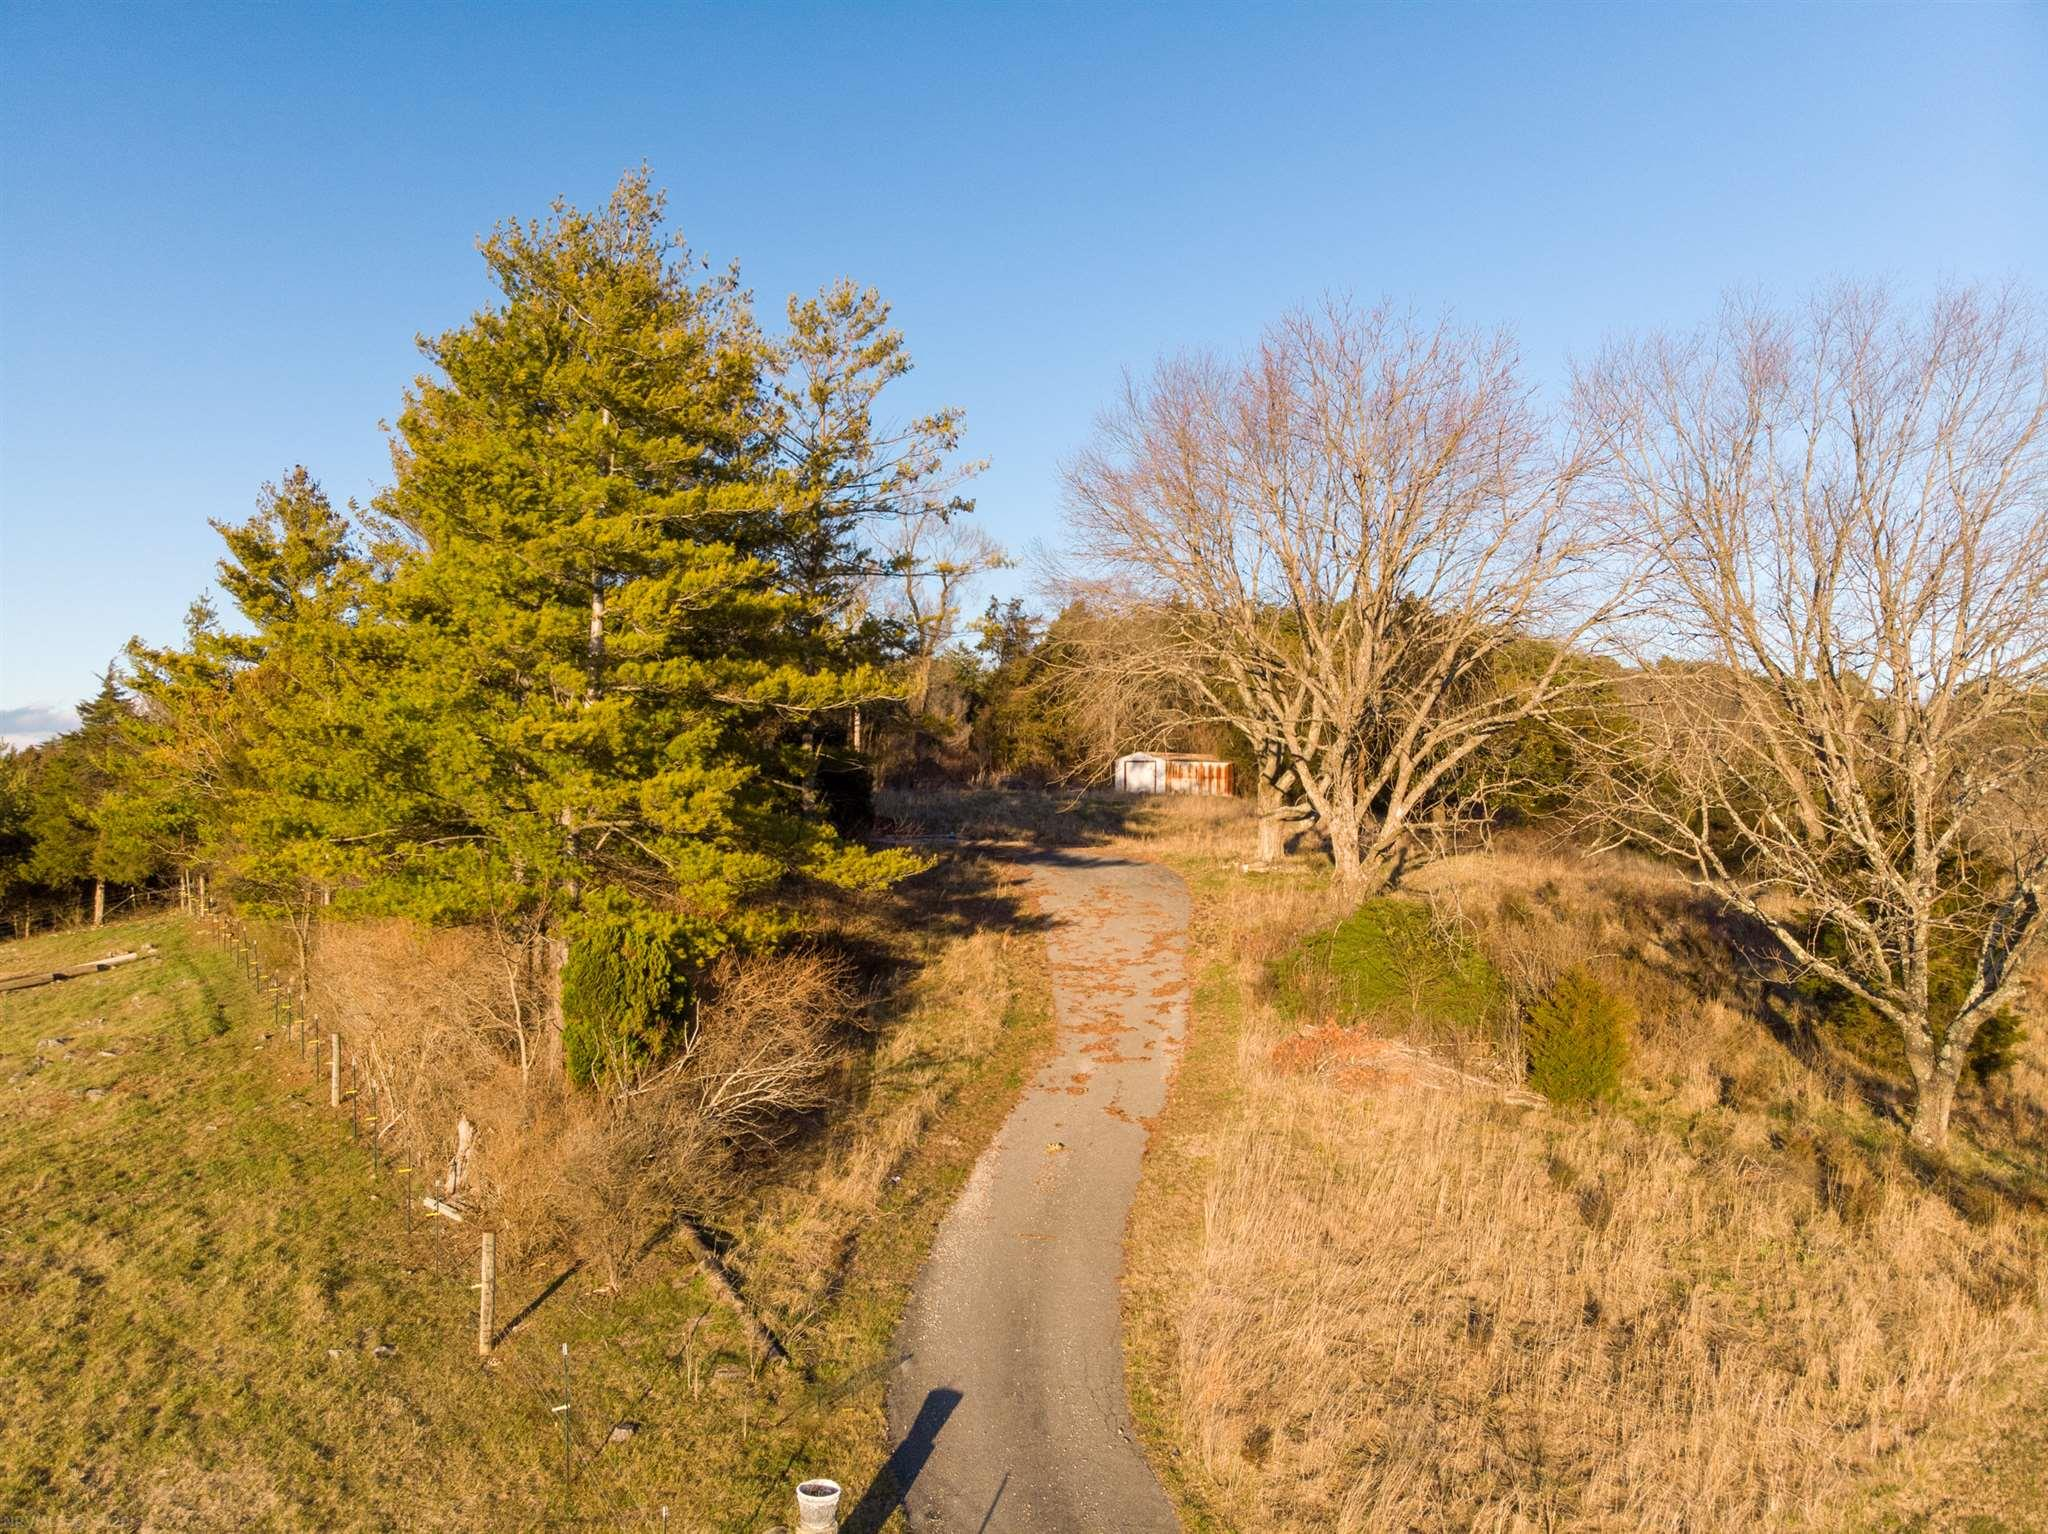 Amazing, majestic views await on this peaceful 1.5+ acres overlooking the region with paved driveway. This property is located close to many amenities yet has a rural charm to it. Build your dream home on this lovely parcel of land.